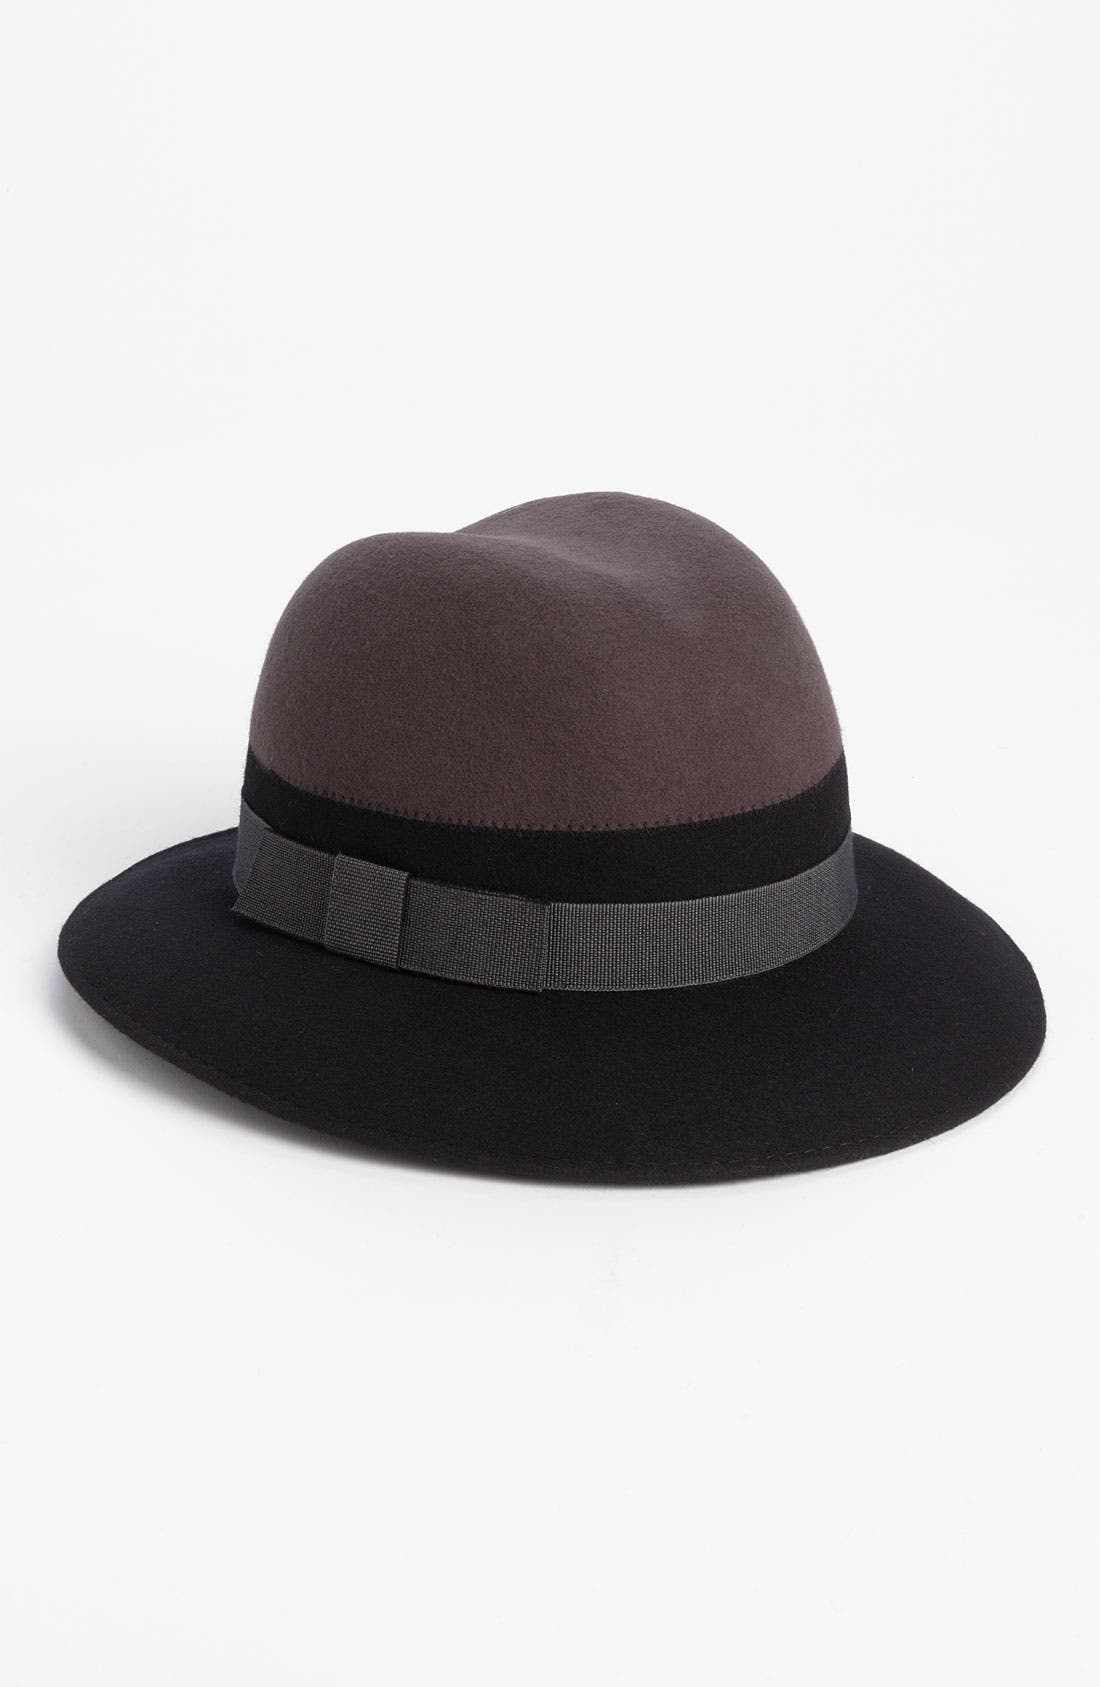 Alternate Image 1 Selected - Nordstrom Colorblock Fedora